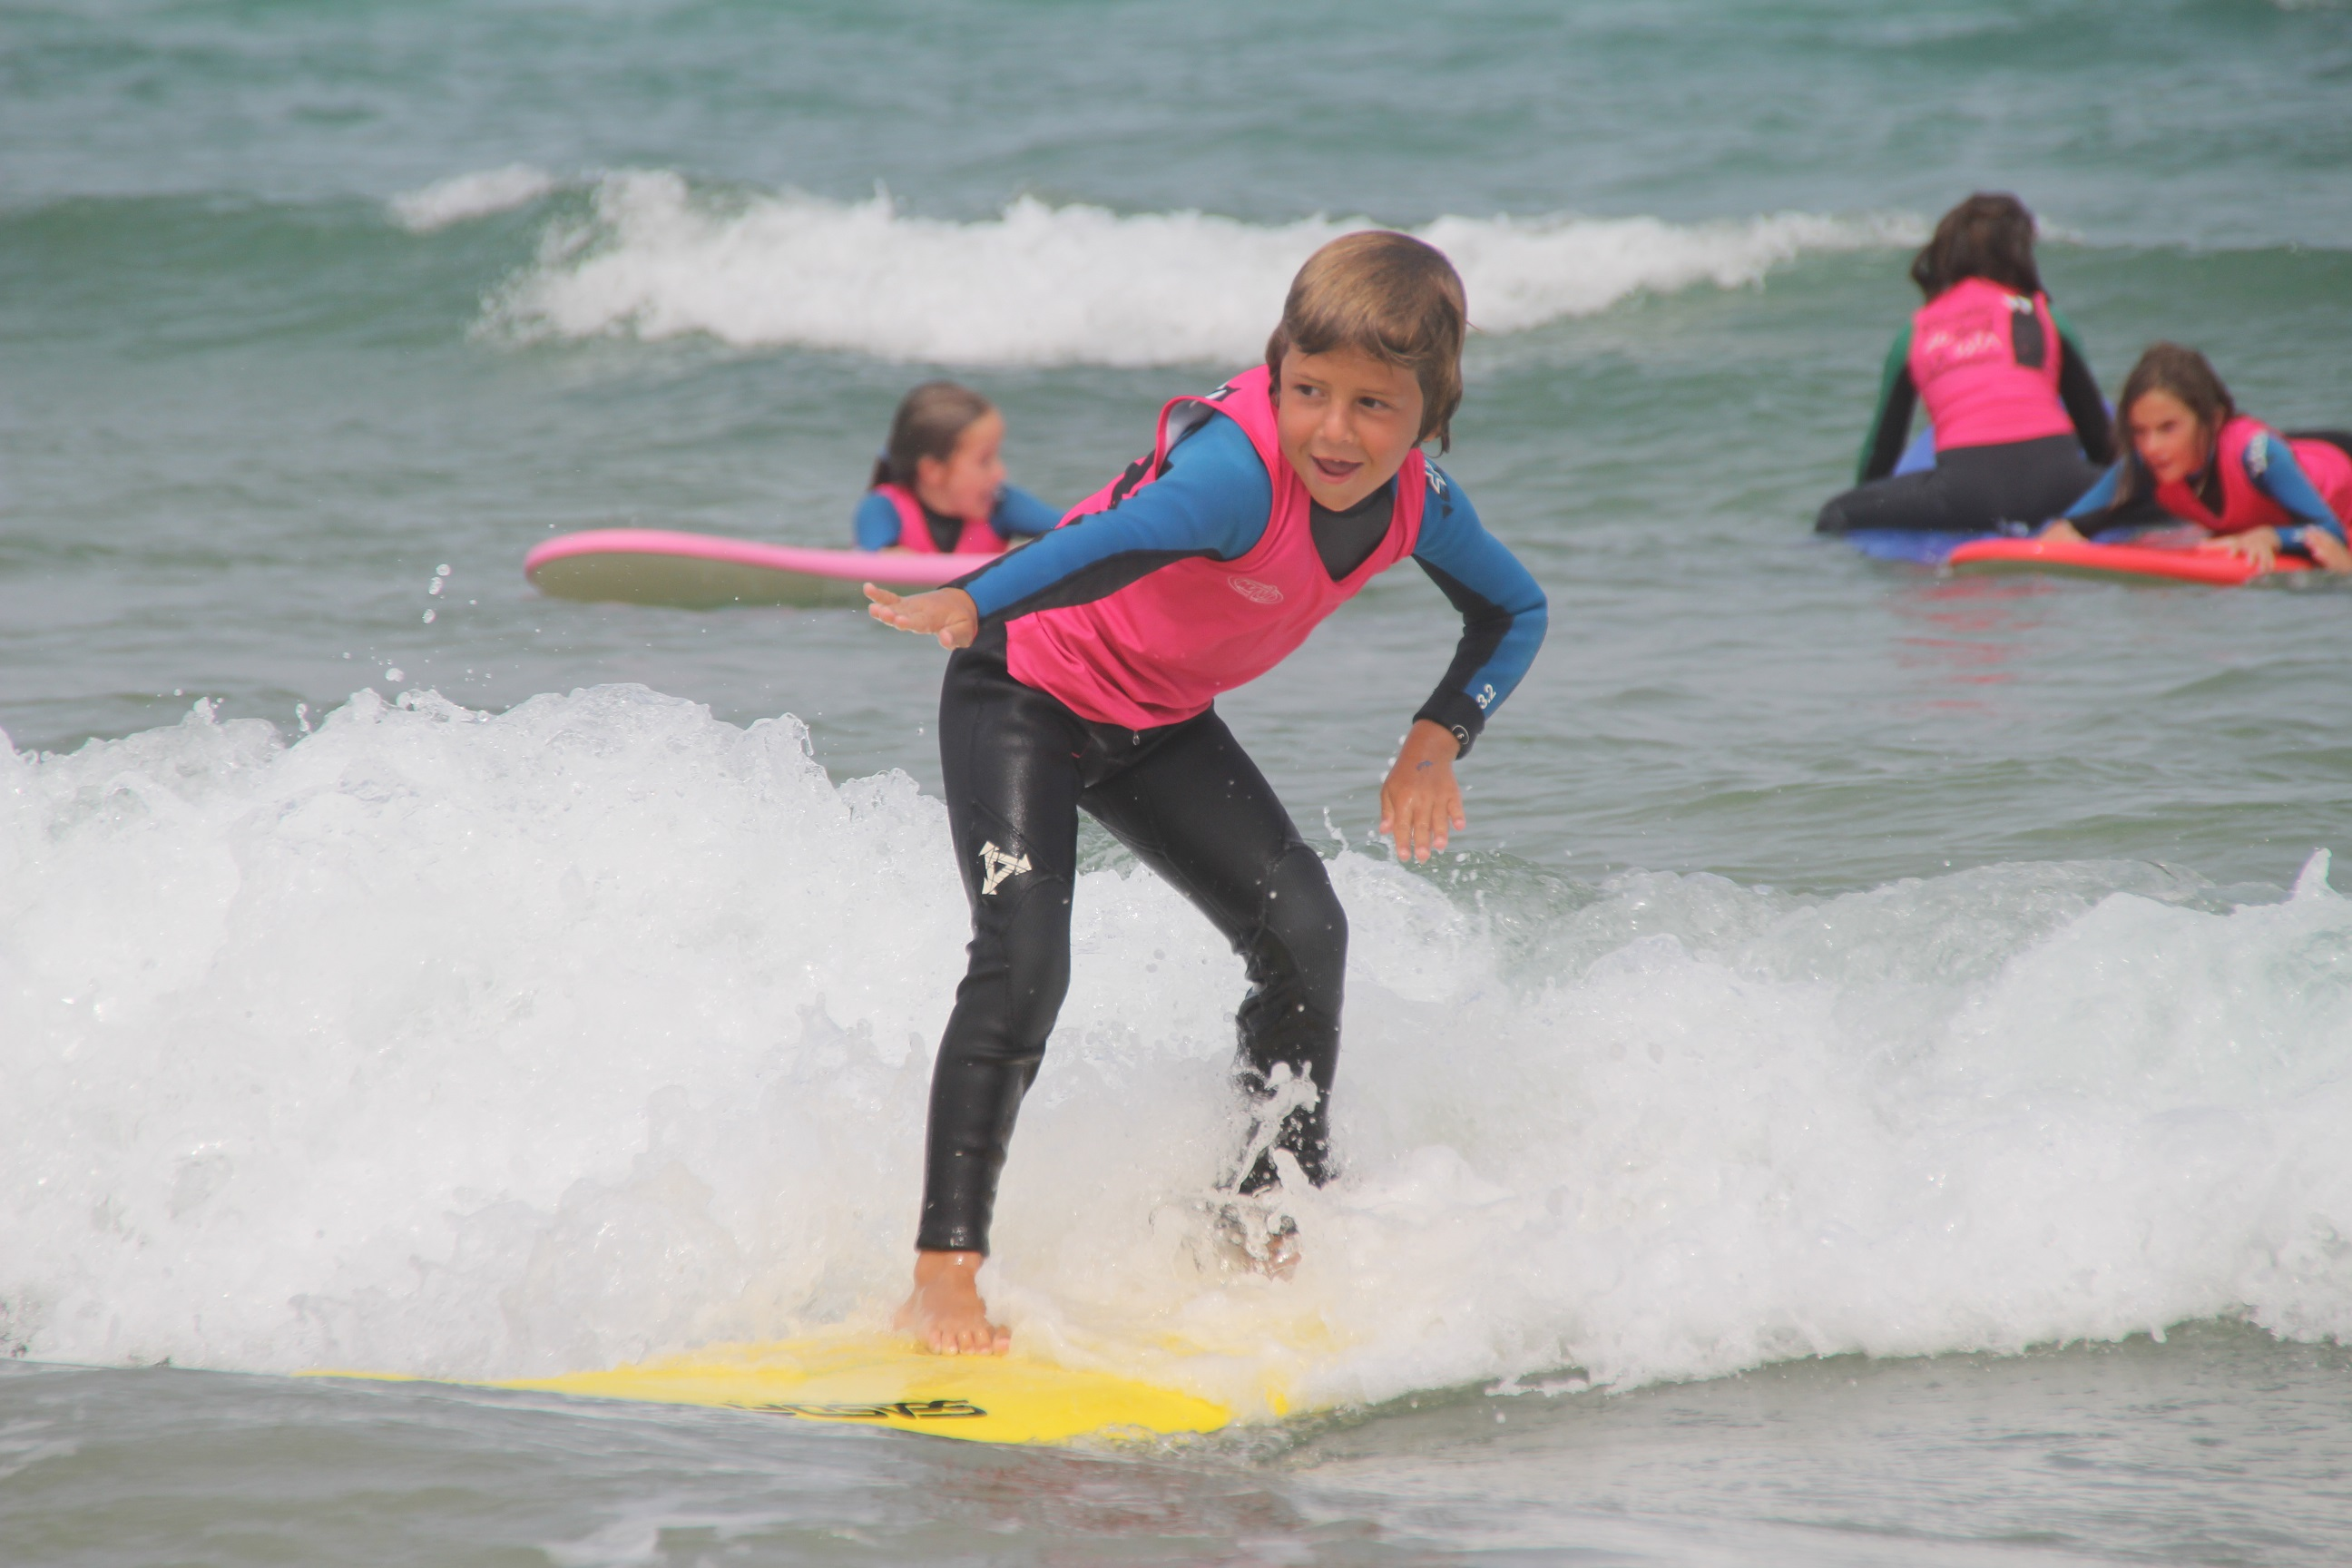 Children surf lessons for children